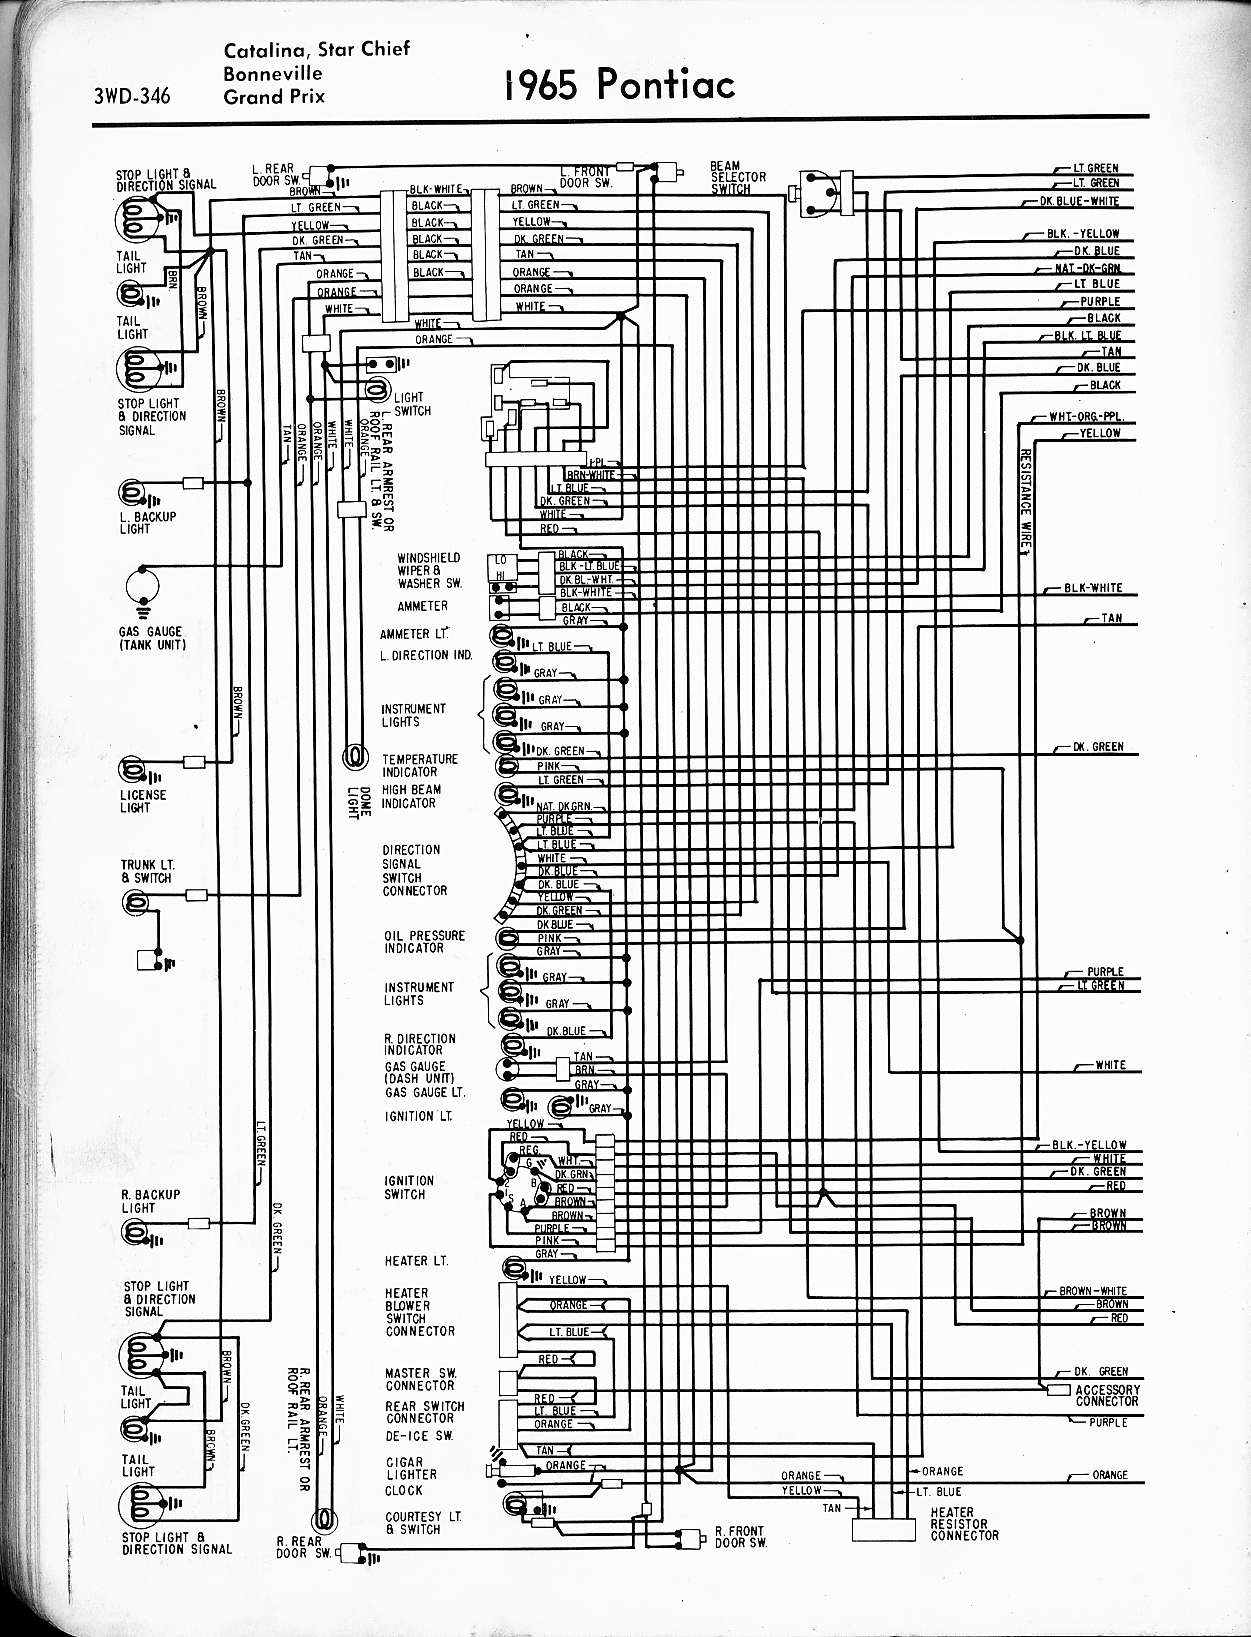 [GJFJ_338]  1966 Gto Radio Wiring 1977 ford f150 ignition switch wiring diagram early  bronco wiring diagram - easy.123vielgeld.de | 1966 Ford Radio Wiring Diagram |  | Wires